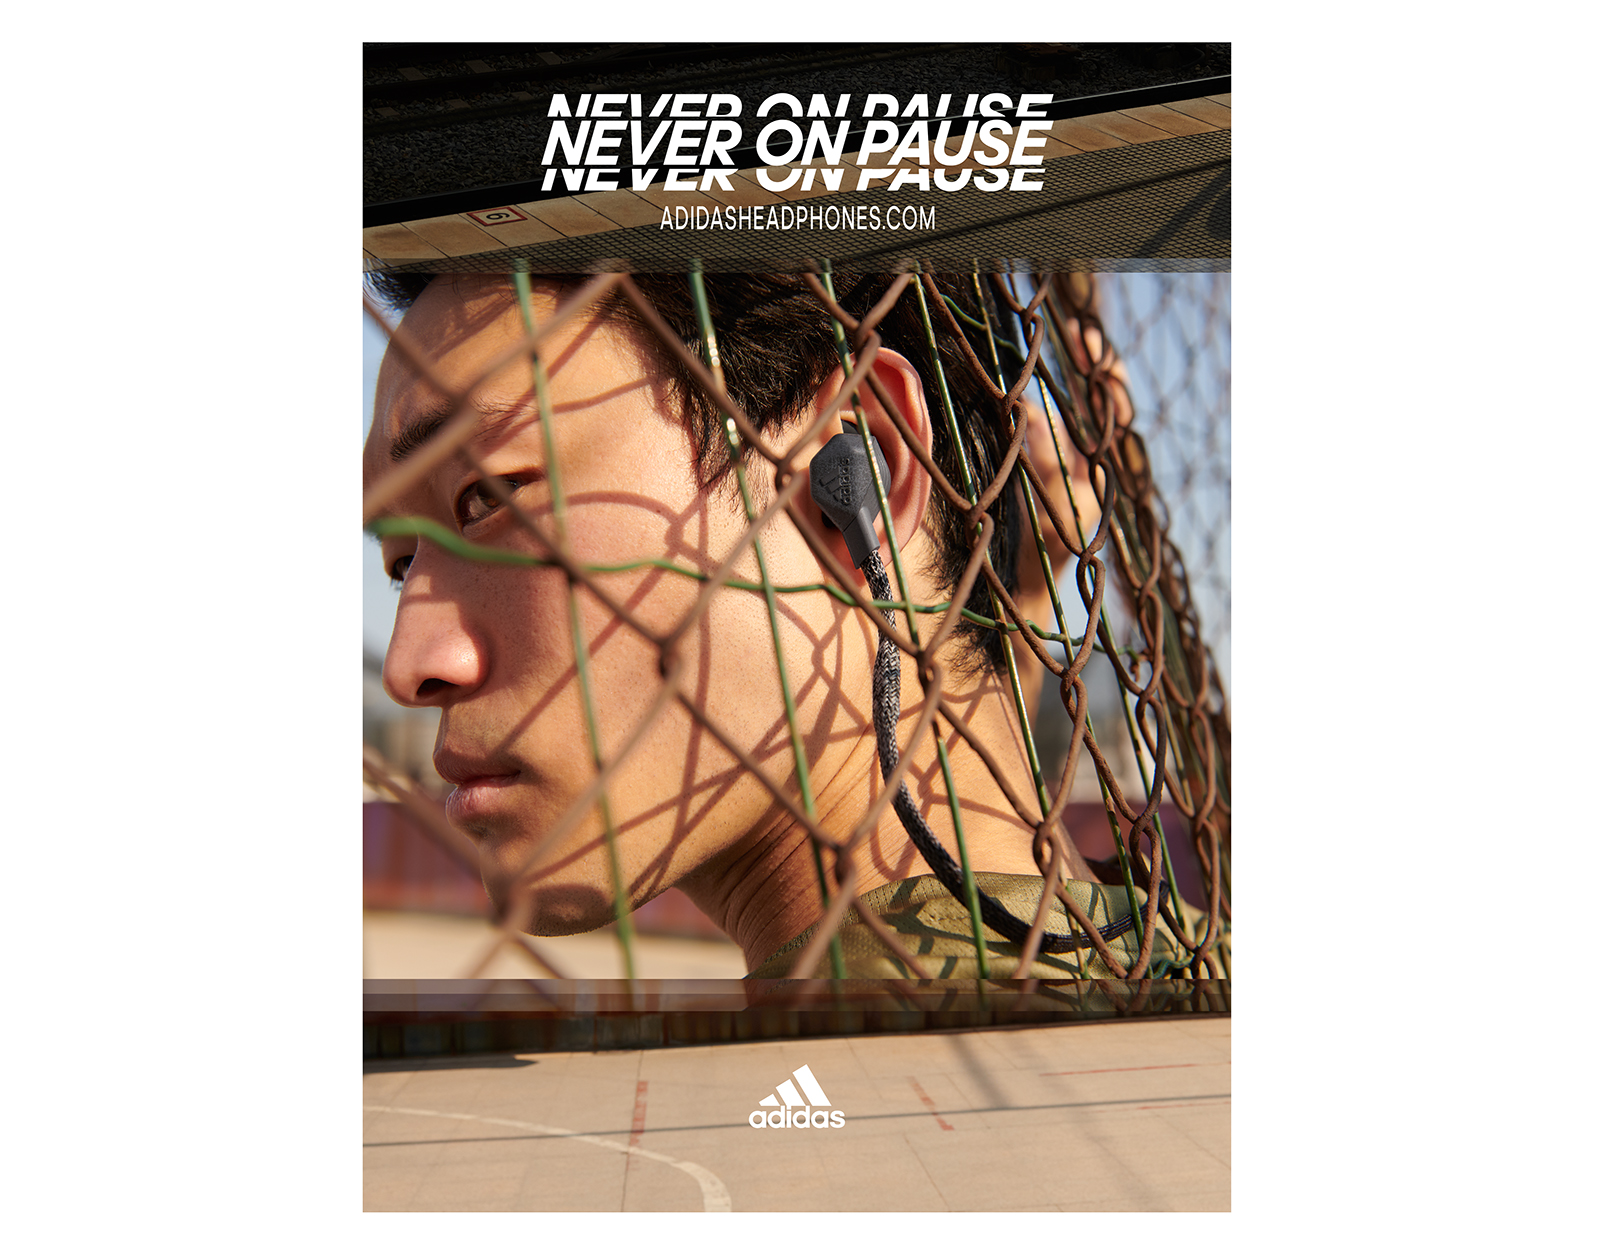 ASS_adidas_never on pause 05.jpg